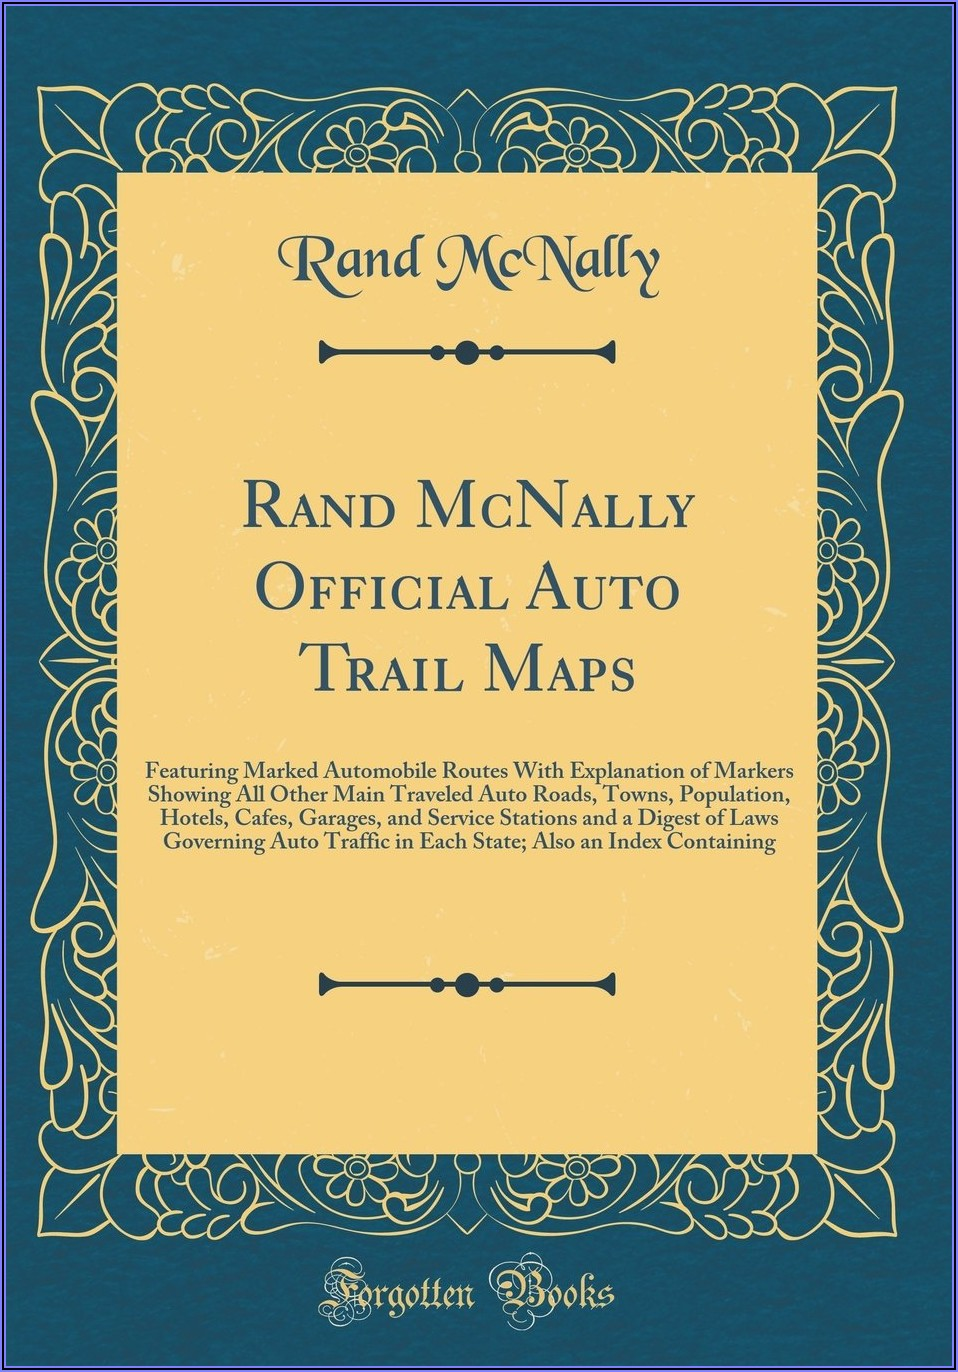 Where Can I Buy Rand Mcnally Maps